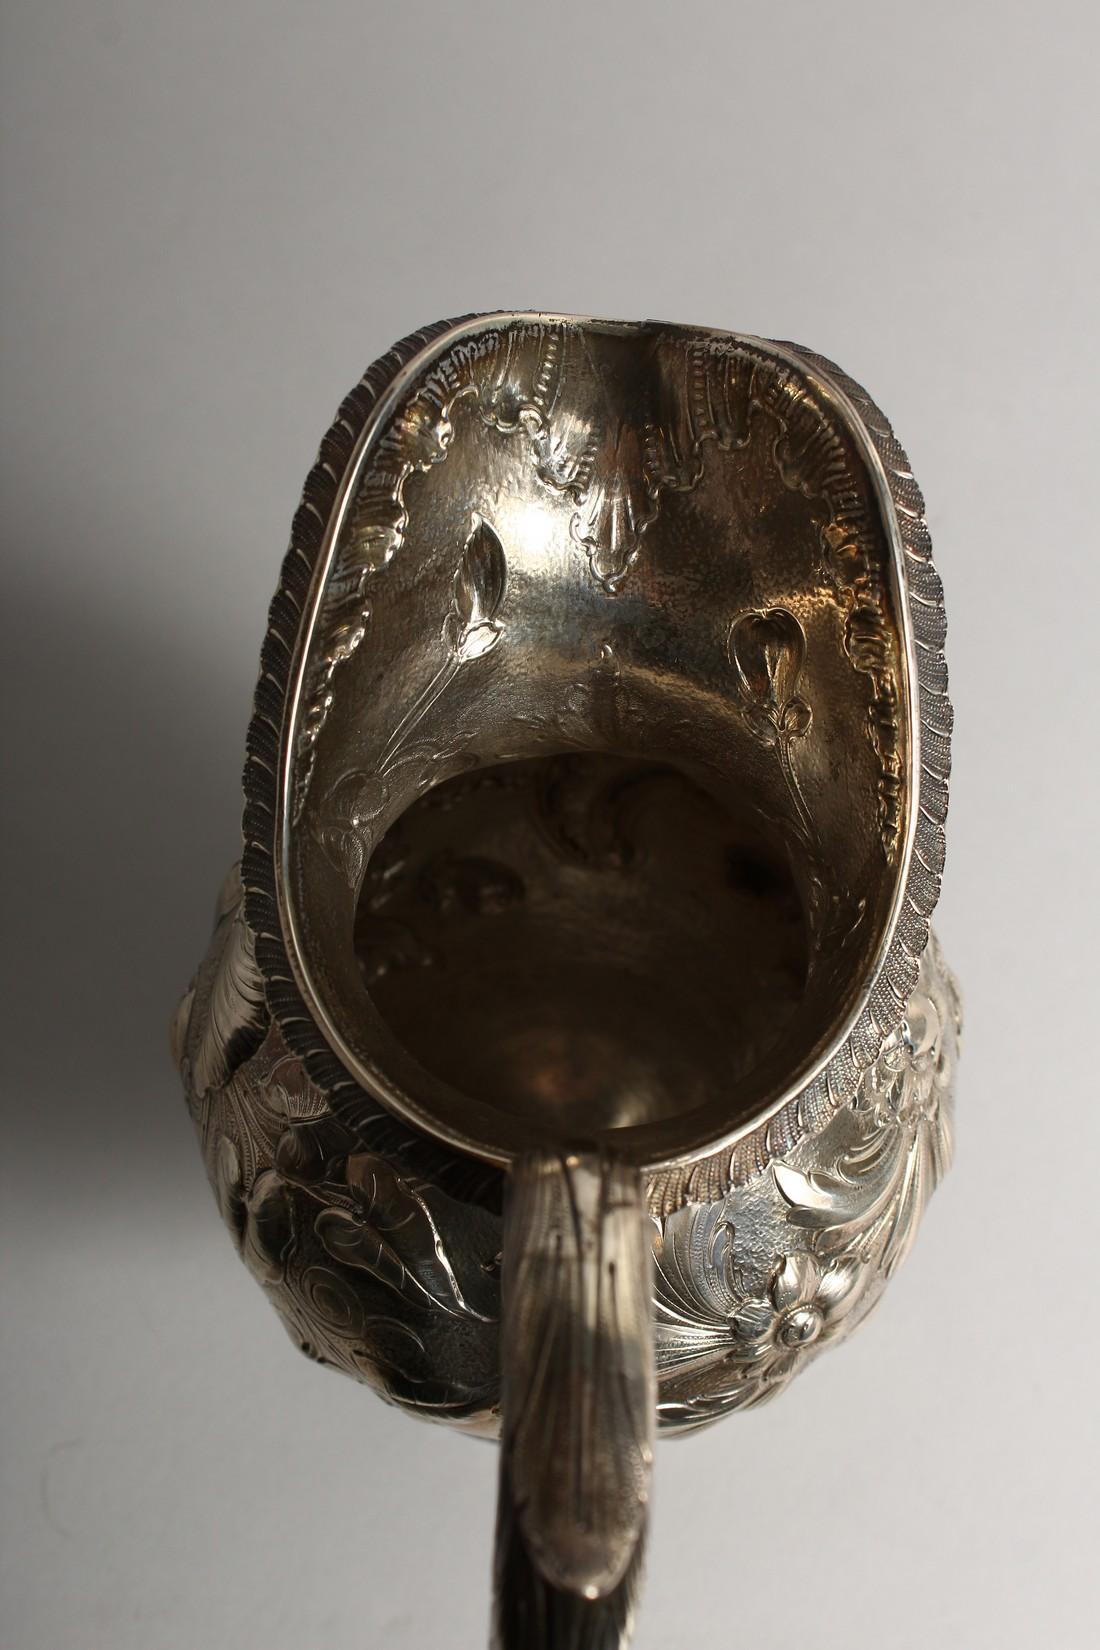 AN R & W WILSON 19TH CENTURY PHILADELPHIA SILVER JUG repousse with flowers and scrolls 8ins high, - Image 6 of 8